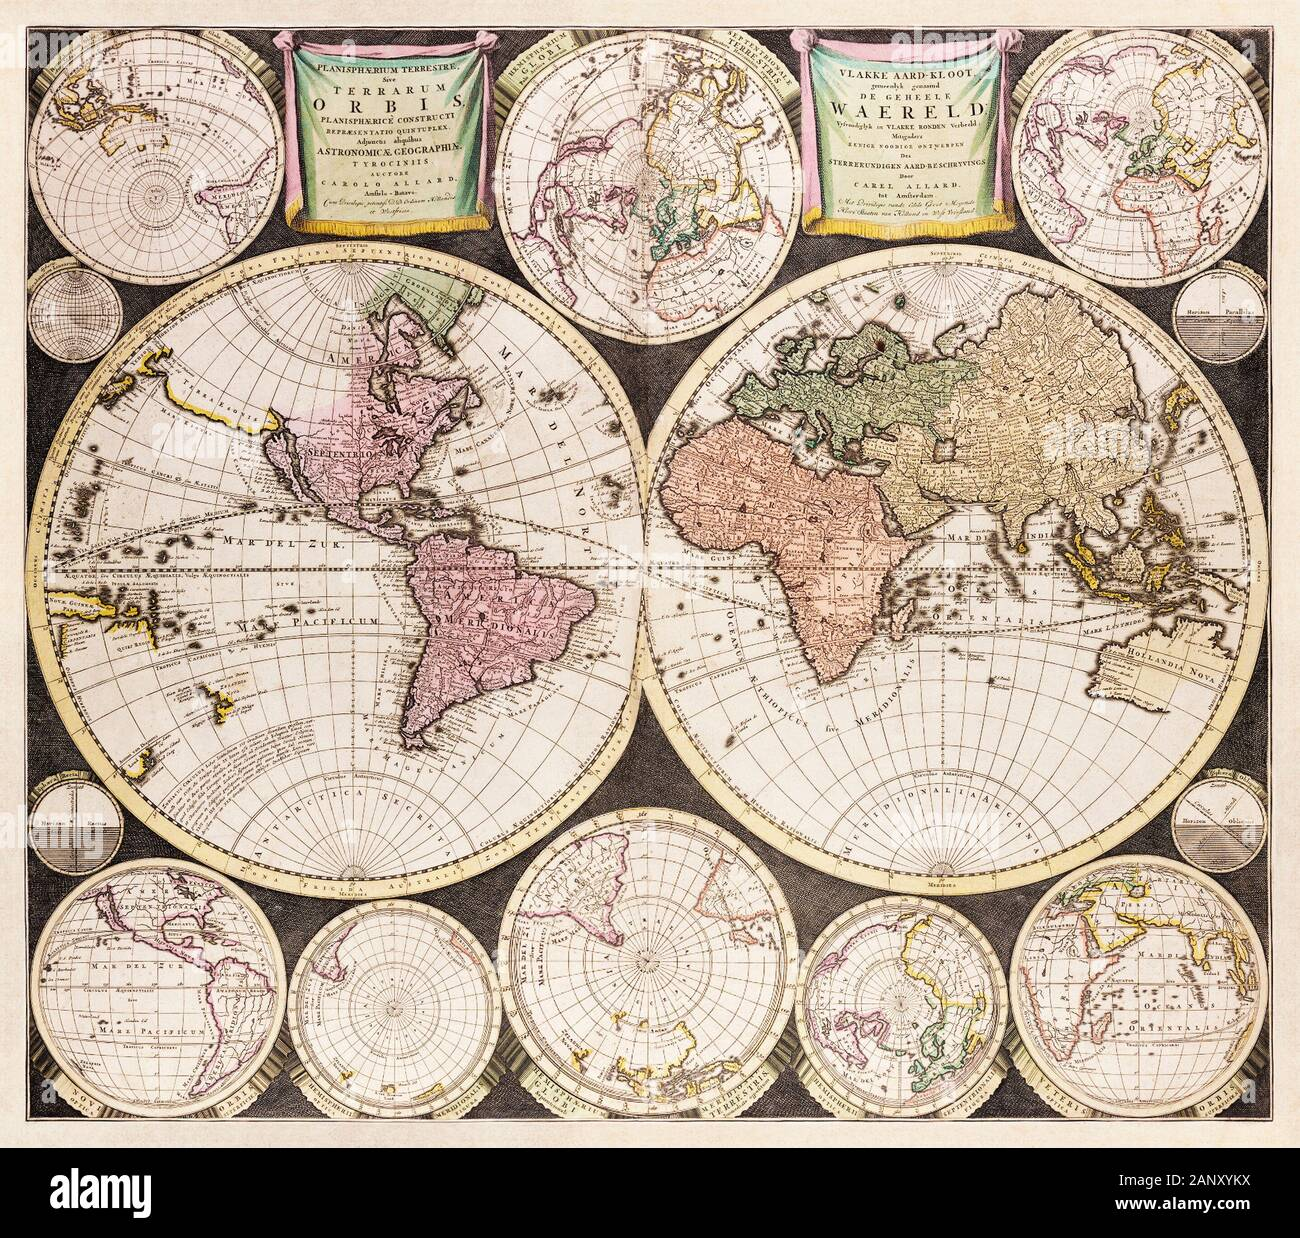 1646, 1675, 17, 17c, 17th, africa, america, american, amsterdam, ancient, antiquarian, antique, asia, atlas, book, cartographer, cartographic, cartography, century, chart, collect, collectable, colonialism, colonies, colony, continent, den, early, engraved, engraving, europe, exploration, explore, famous, geographic, geography, hand, handmade, historic, historical, history, independence, john, kaerius, keere, london, made, making, map, mapmaking, north, ocean, old, original, paper, parts, peter, petrus, pieter, pre, print, printed, prospect, published, rare, revolution, sea, settler, settlers, Stock Photo